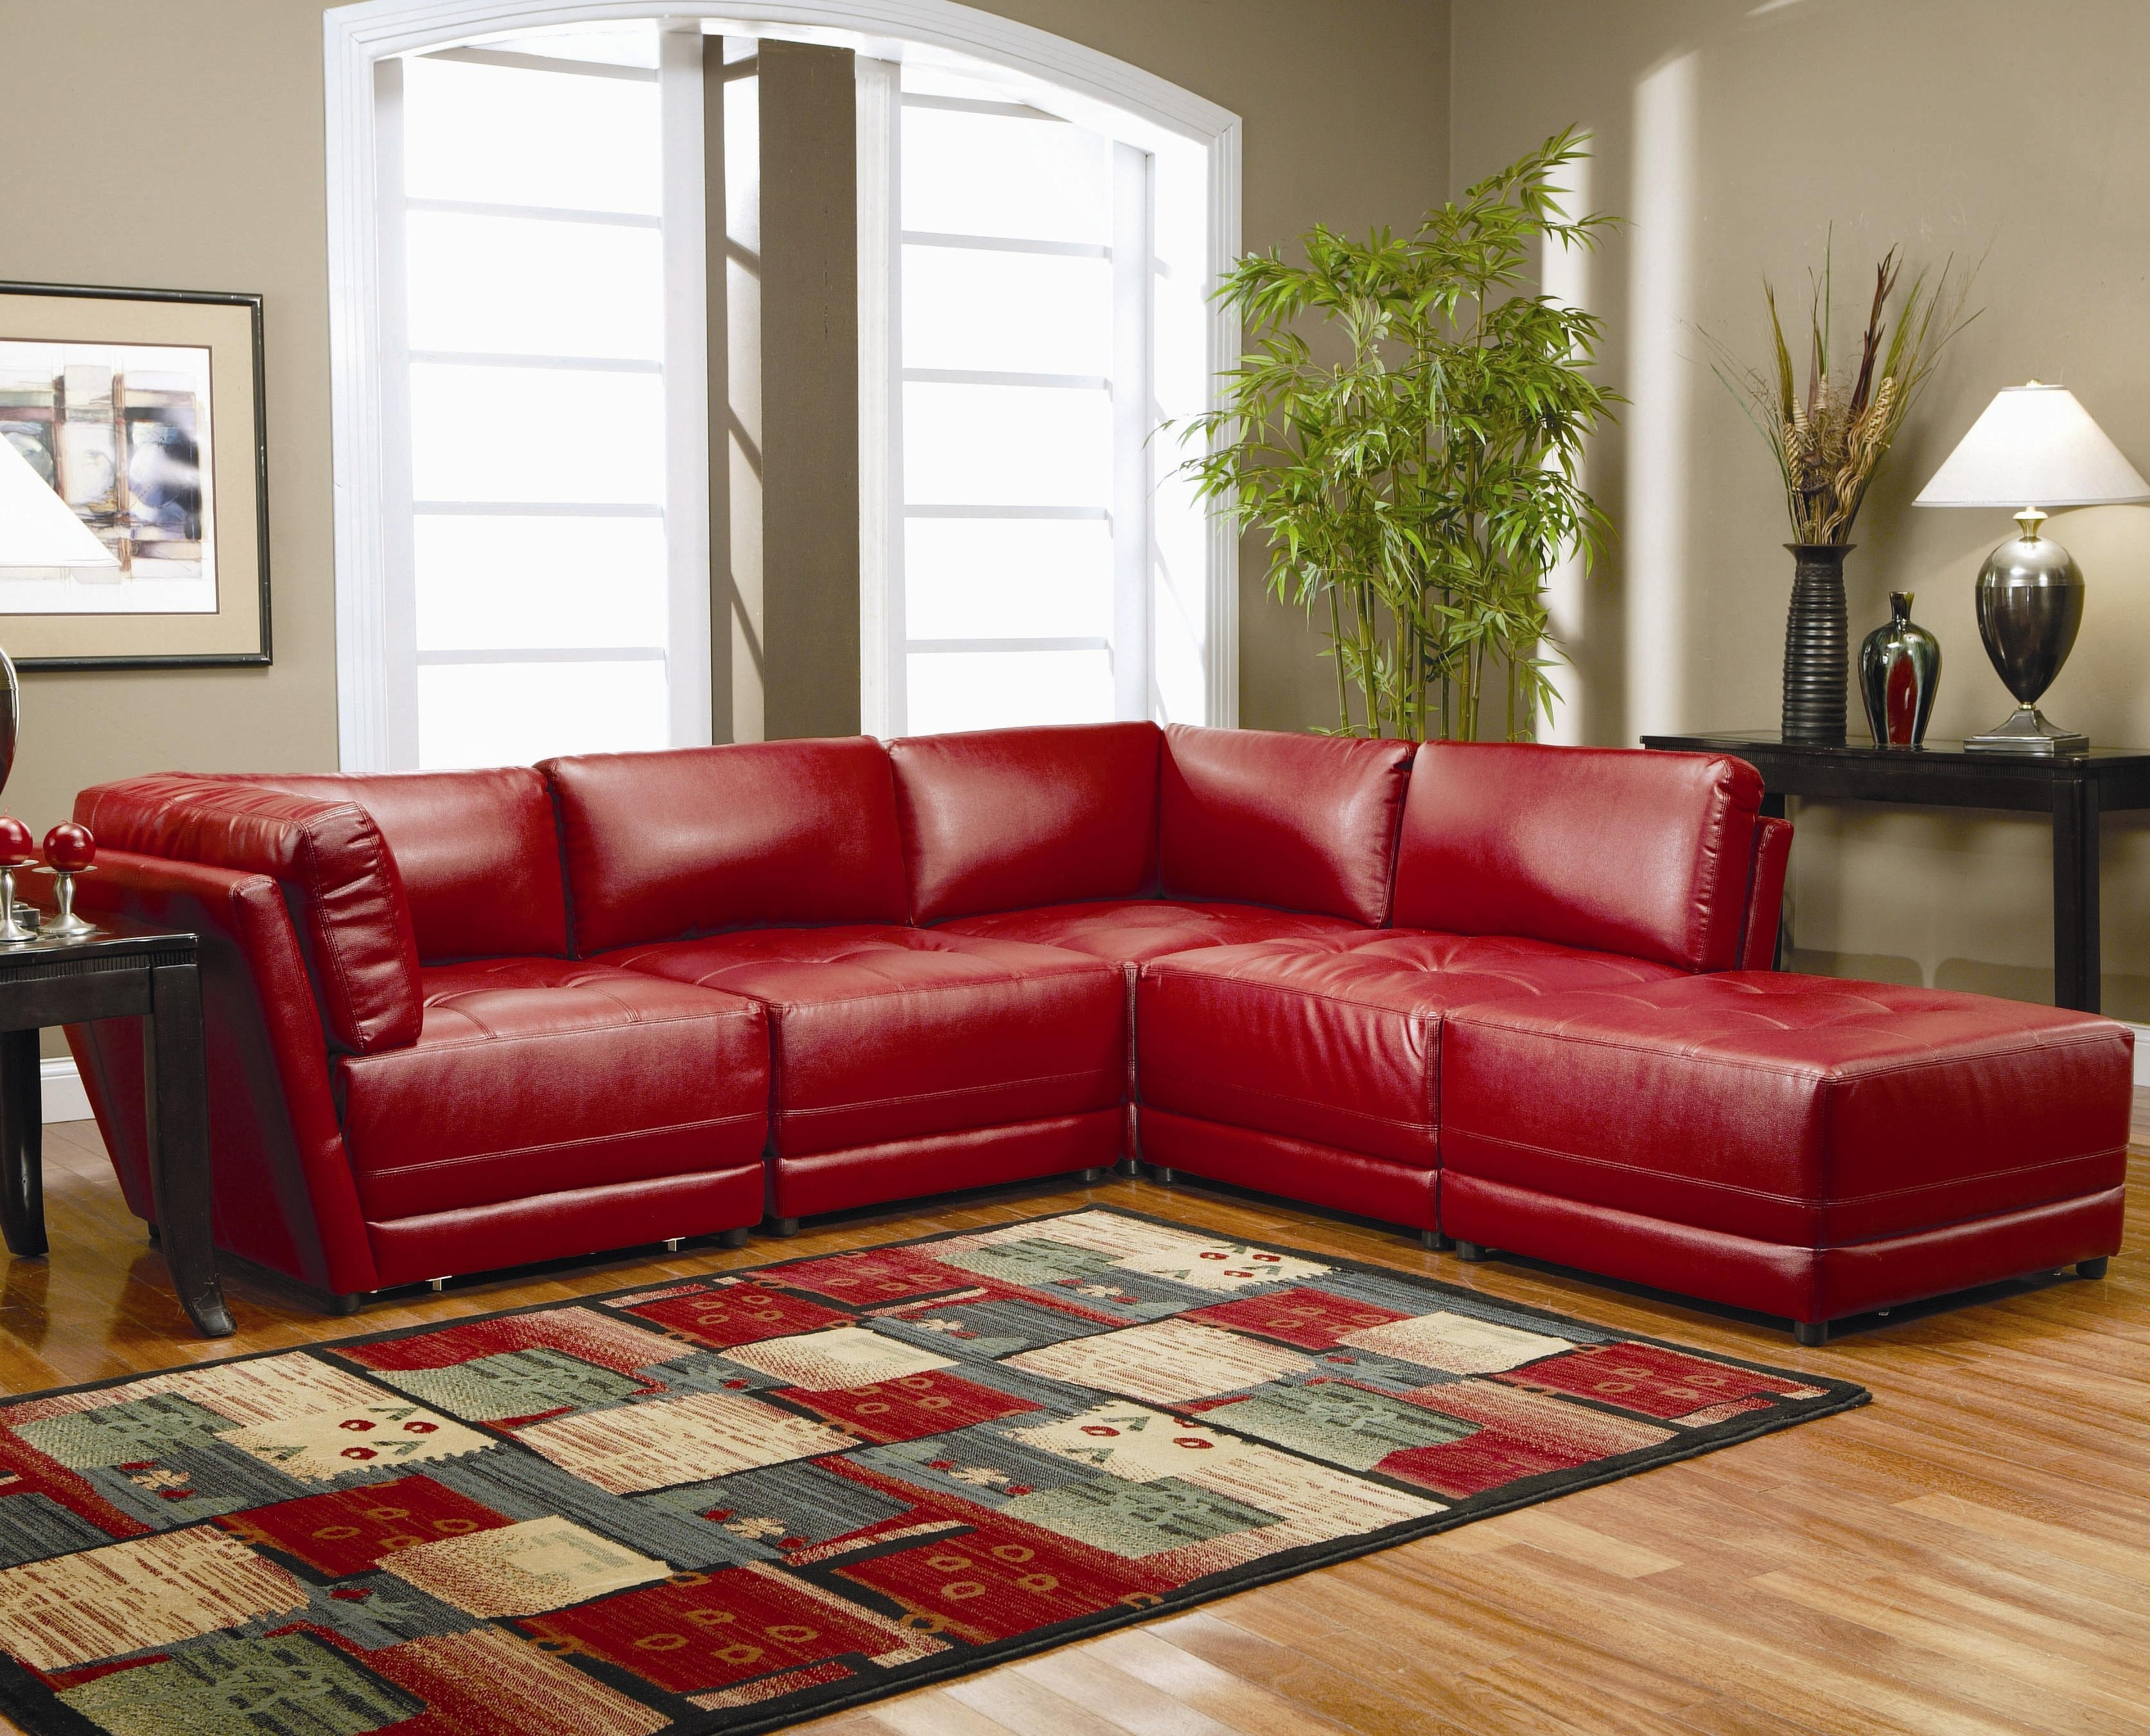 Warm Red Leather Sectional L Shaped Sofa Design Ideas For Living With Best And Newest Green Bay Wi Sectional Sofas (View 17 of 20)